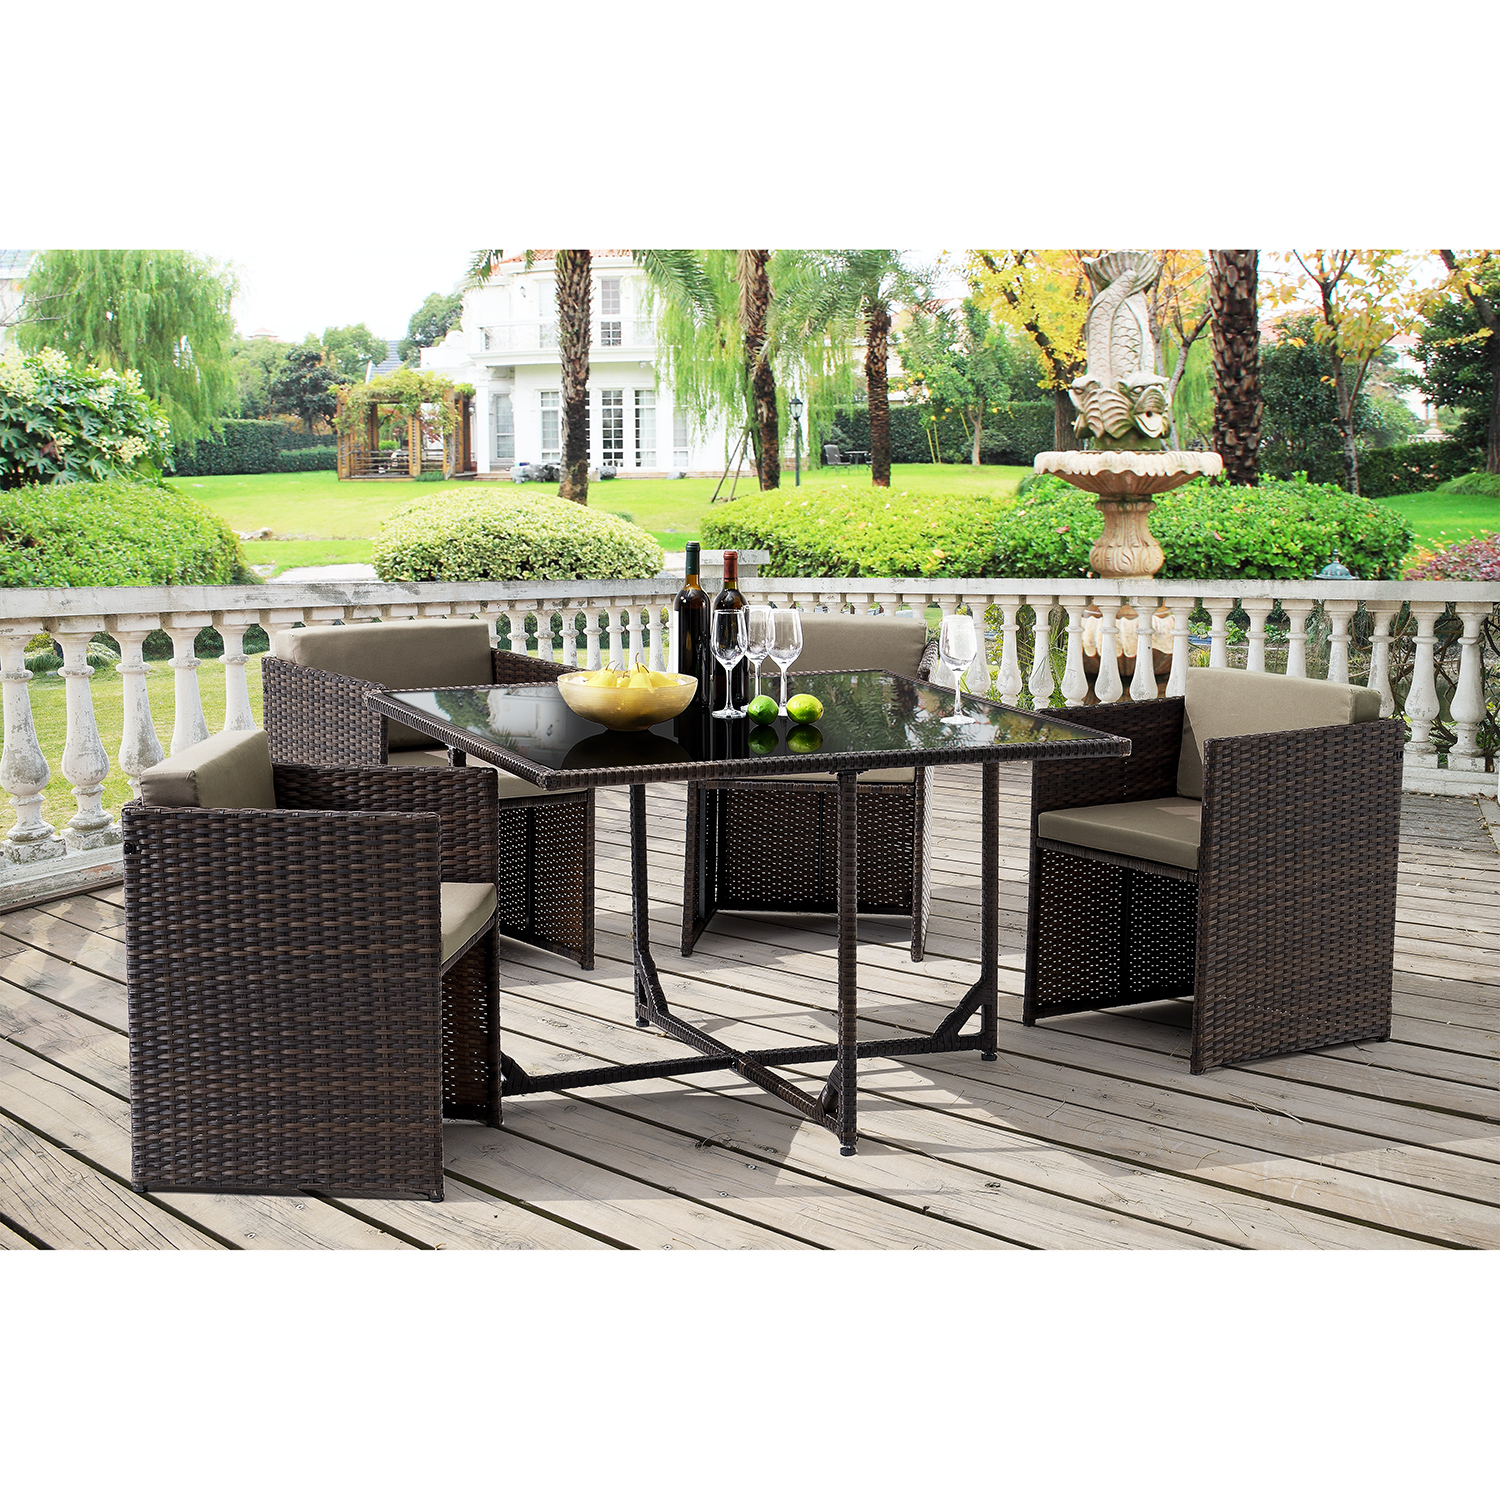 Casa pro poly rotin si ges table 4 chaises salon jardin for Casa meubles de jardin